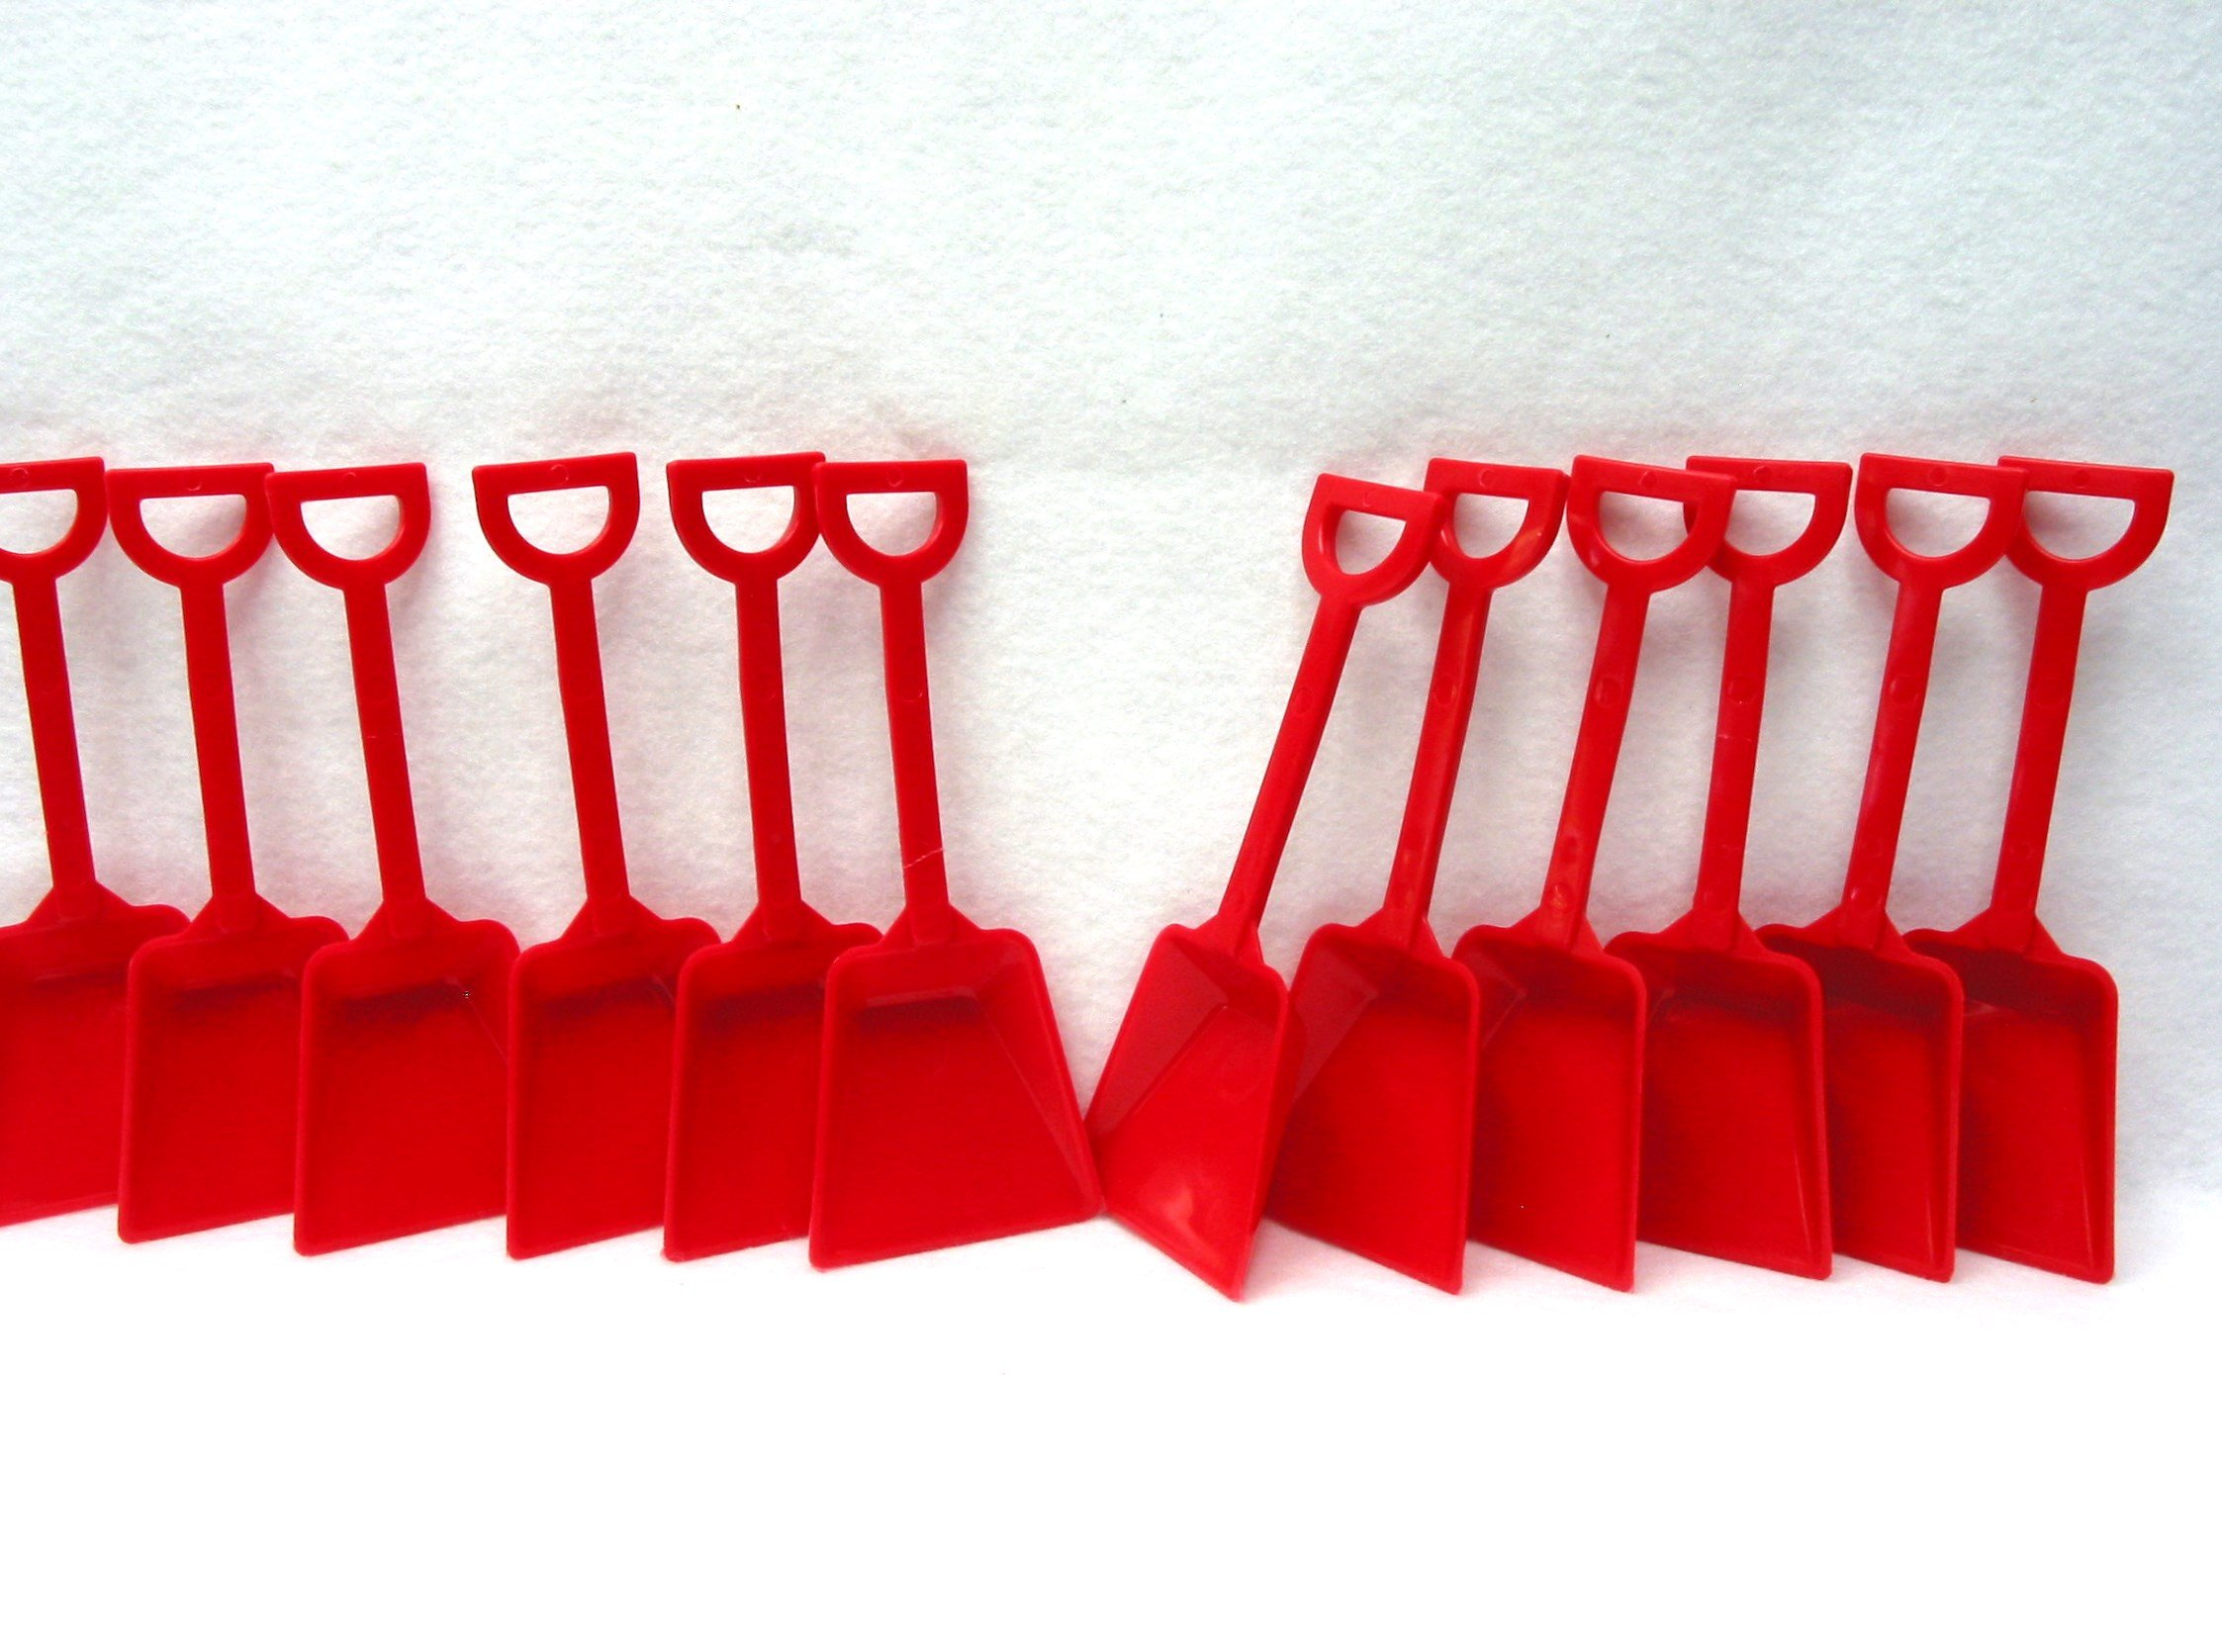 Small Toy Plastic Shovels Wholesale Lot, Pack 500, 7 Inches Tall, Color Red